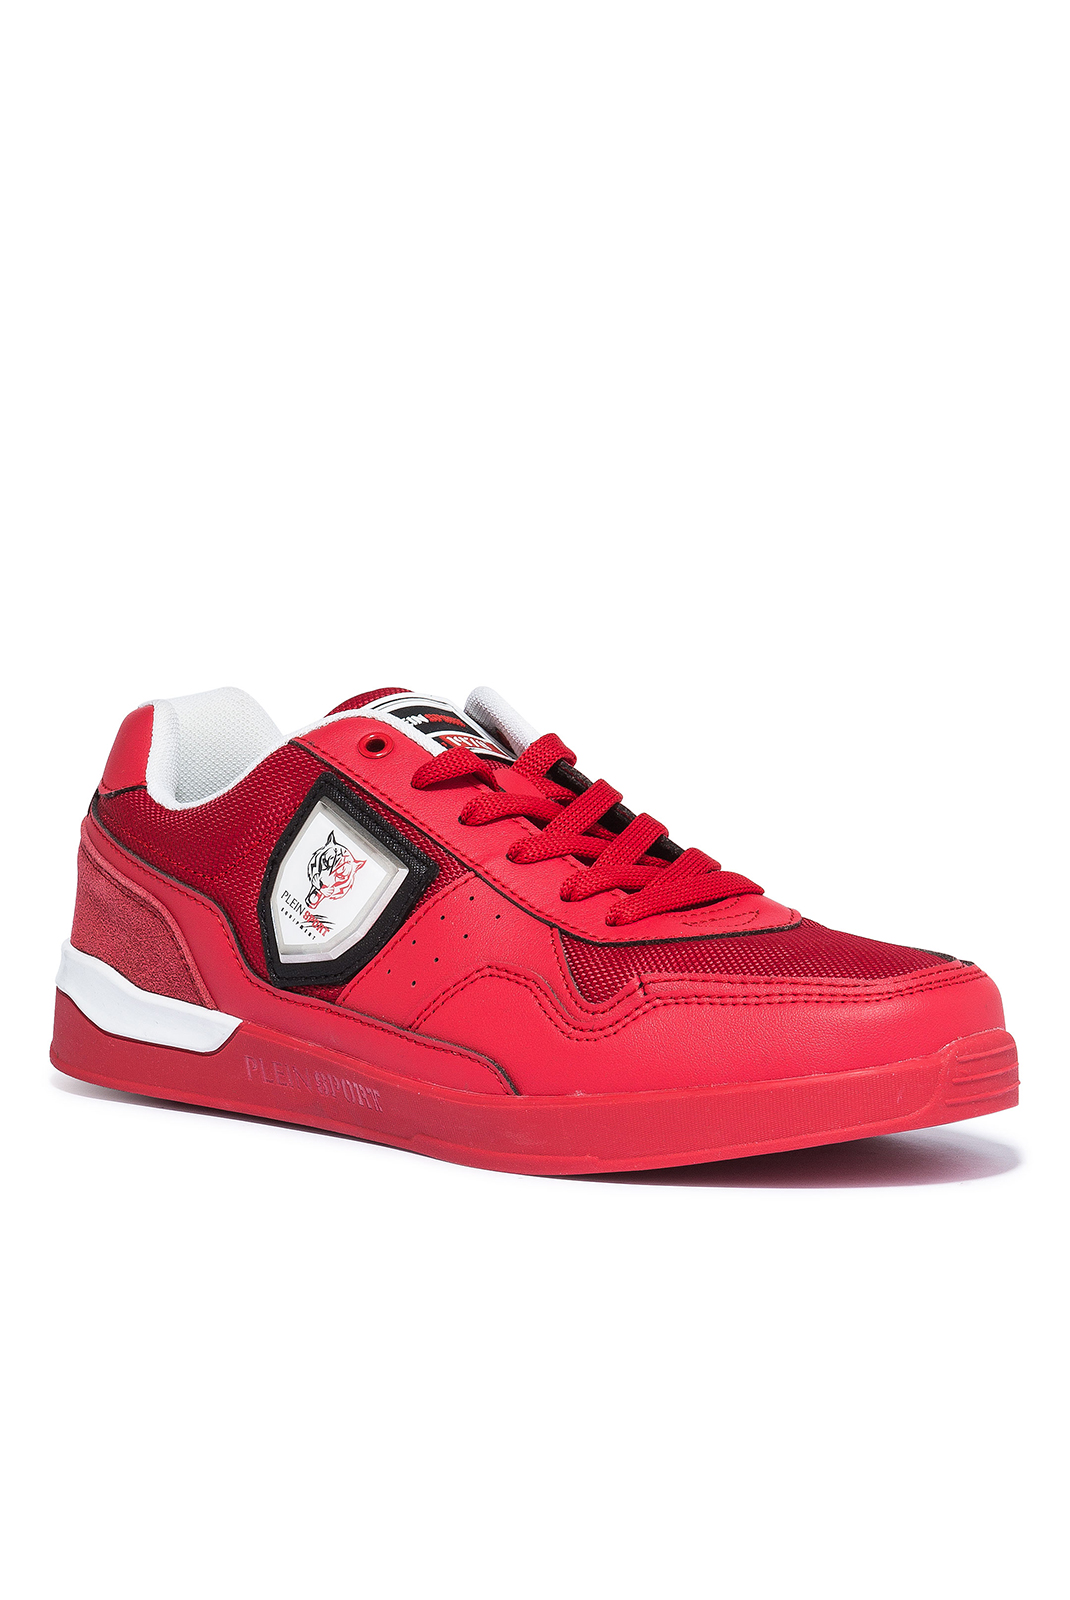 Baskets / Sport  Plein Sport P17S MSC0314 RED NICKEL